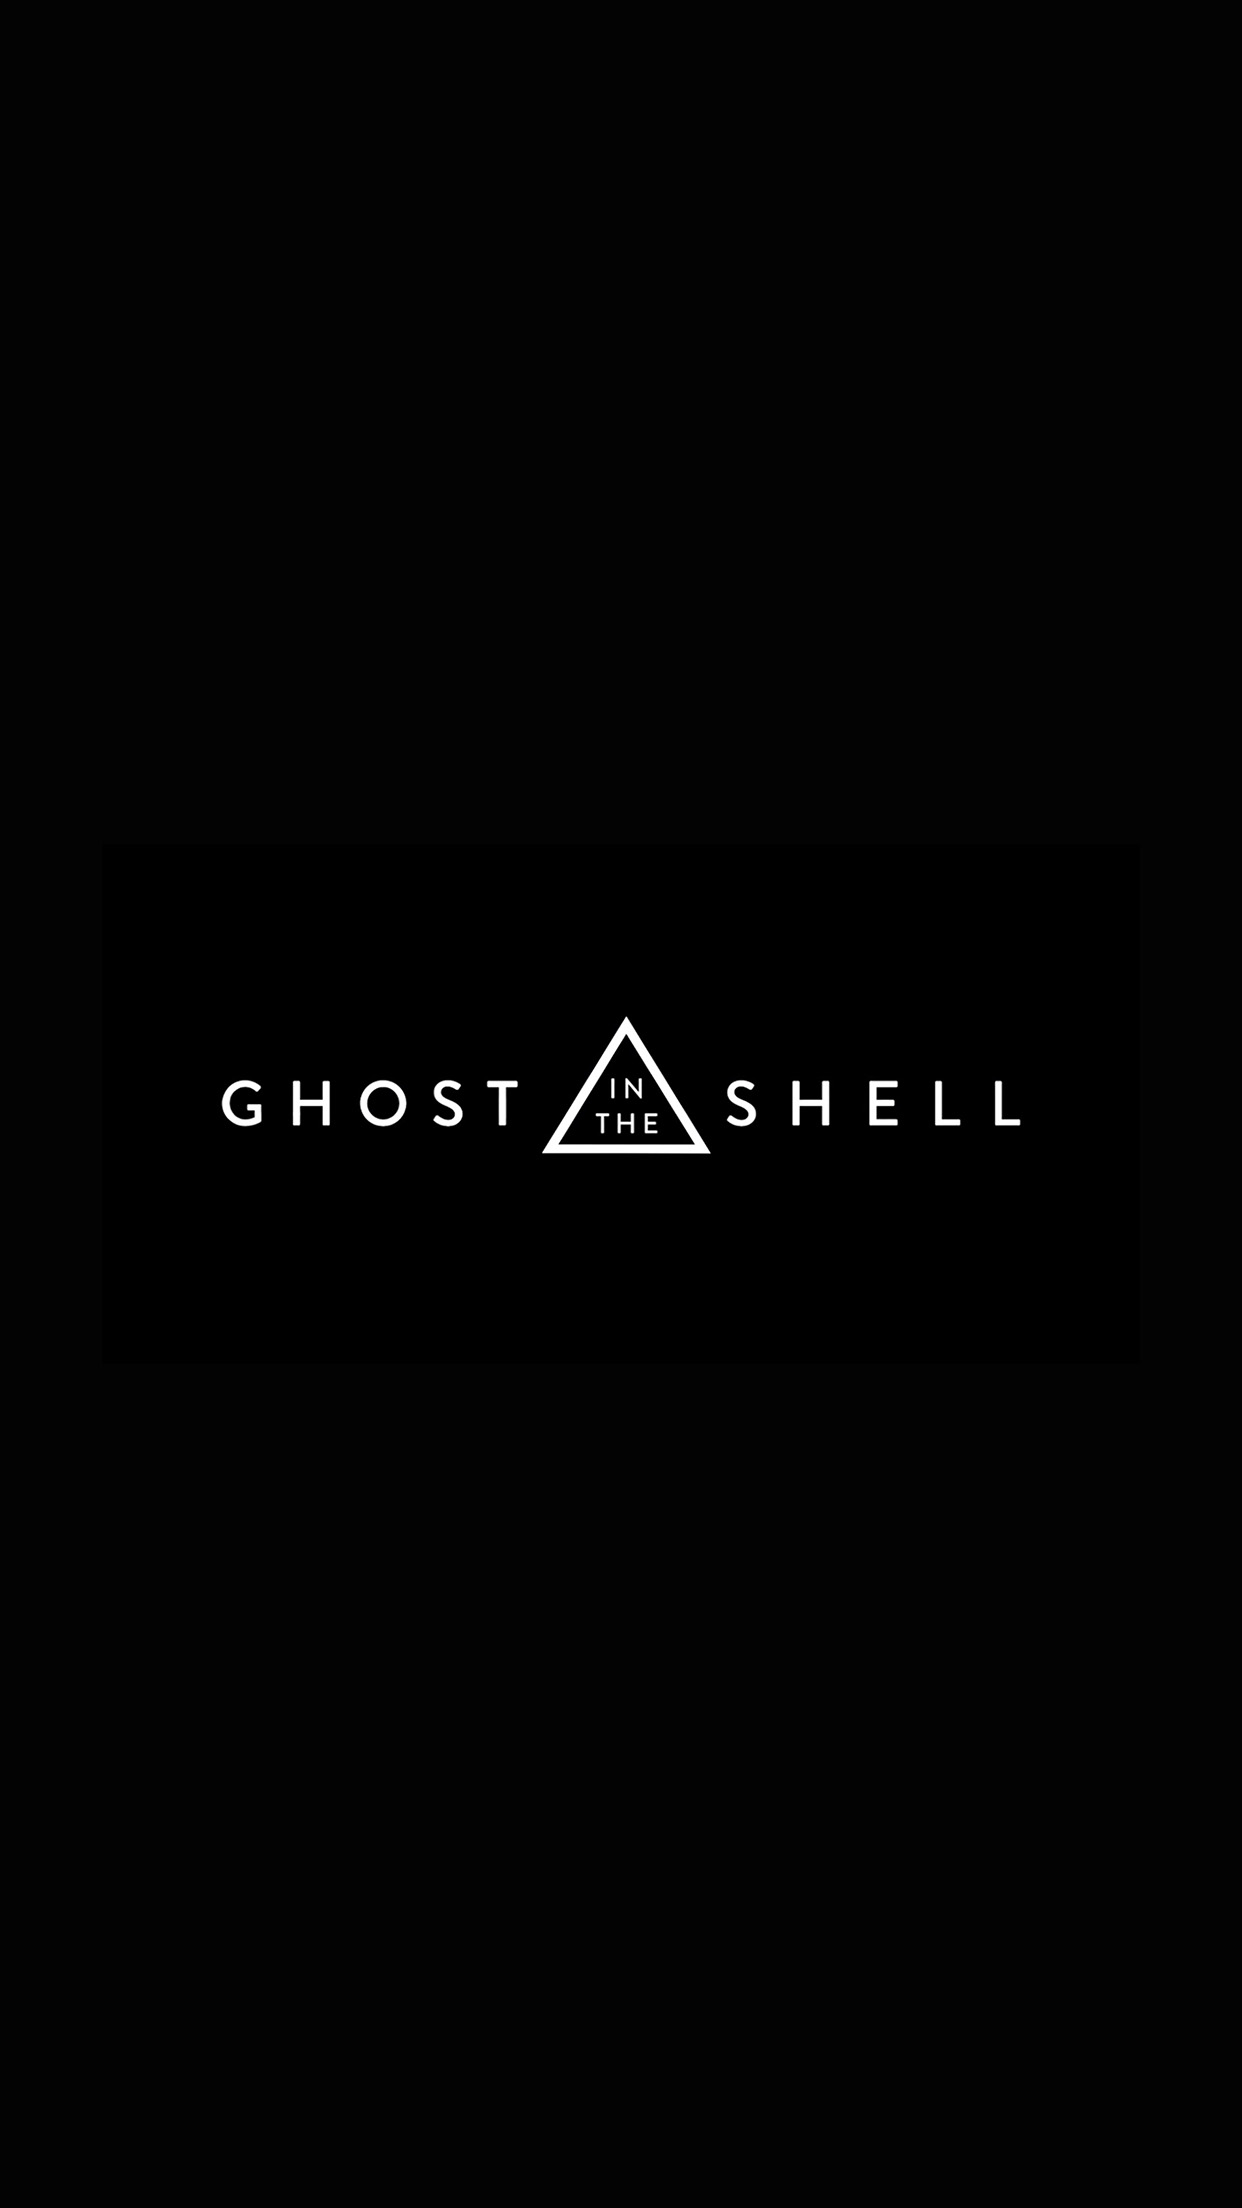 ghost in the shell essay A few days later, paramount unveiled the first image from its 2017 adaptation of ghost in the shell, the classic japanese animated film adapted from japanese manga.